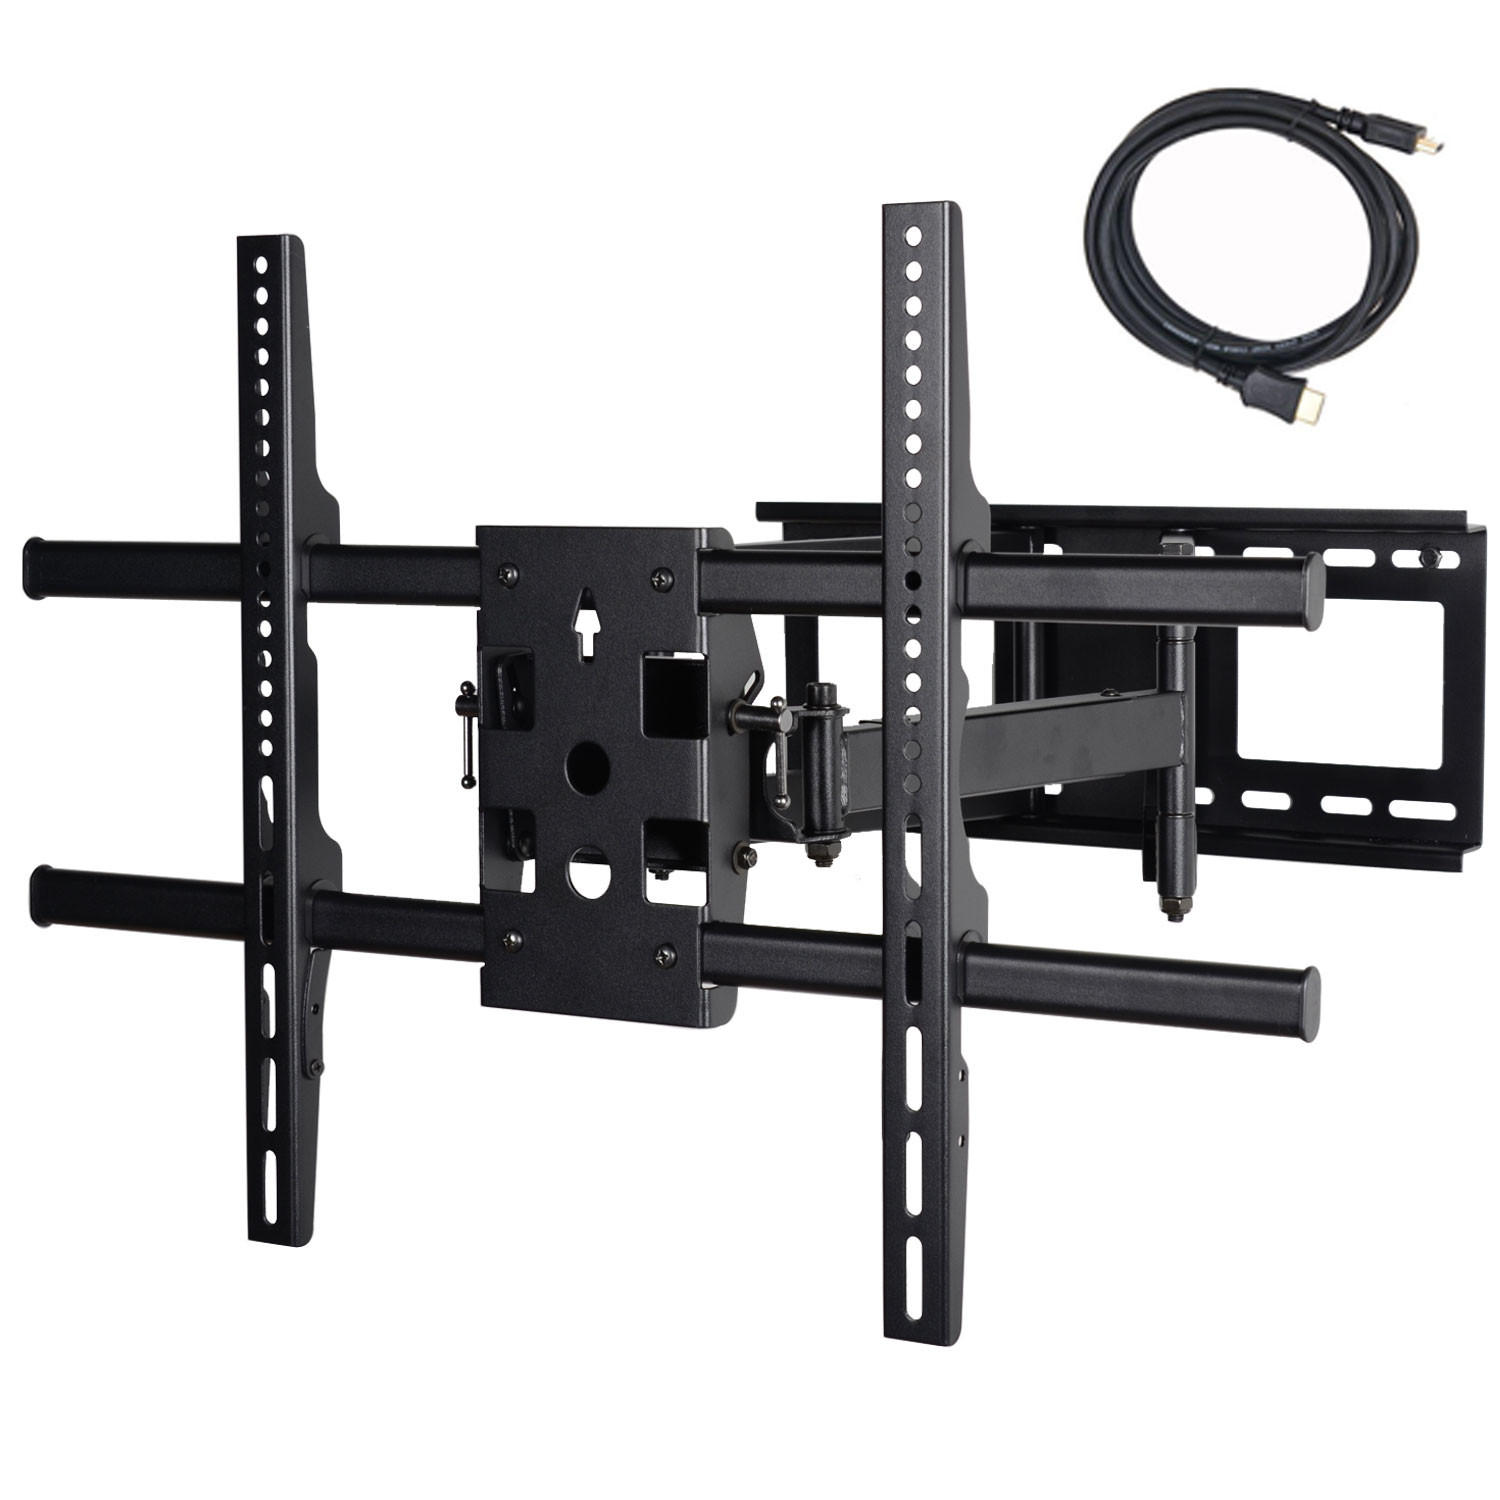 "VideoSecu Heavy Duty TV Wall Mount for most 40""-70"" VIZIO D55U-D1 E55-C1 D65U-D2 E70-C3 M70-C3 HDTV LCD LED MW380B2 A37"